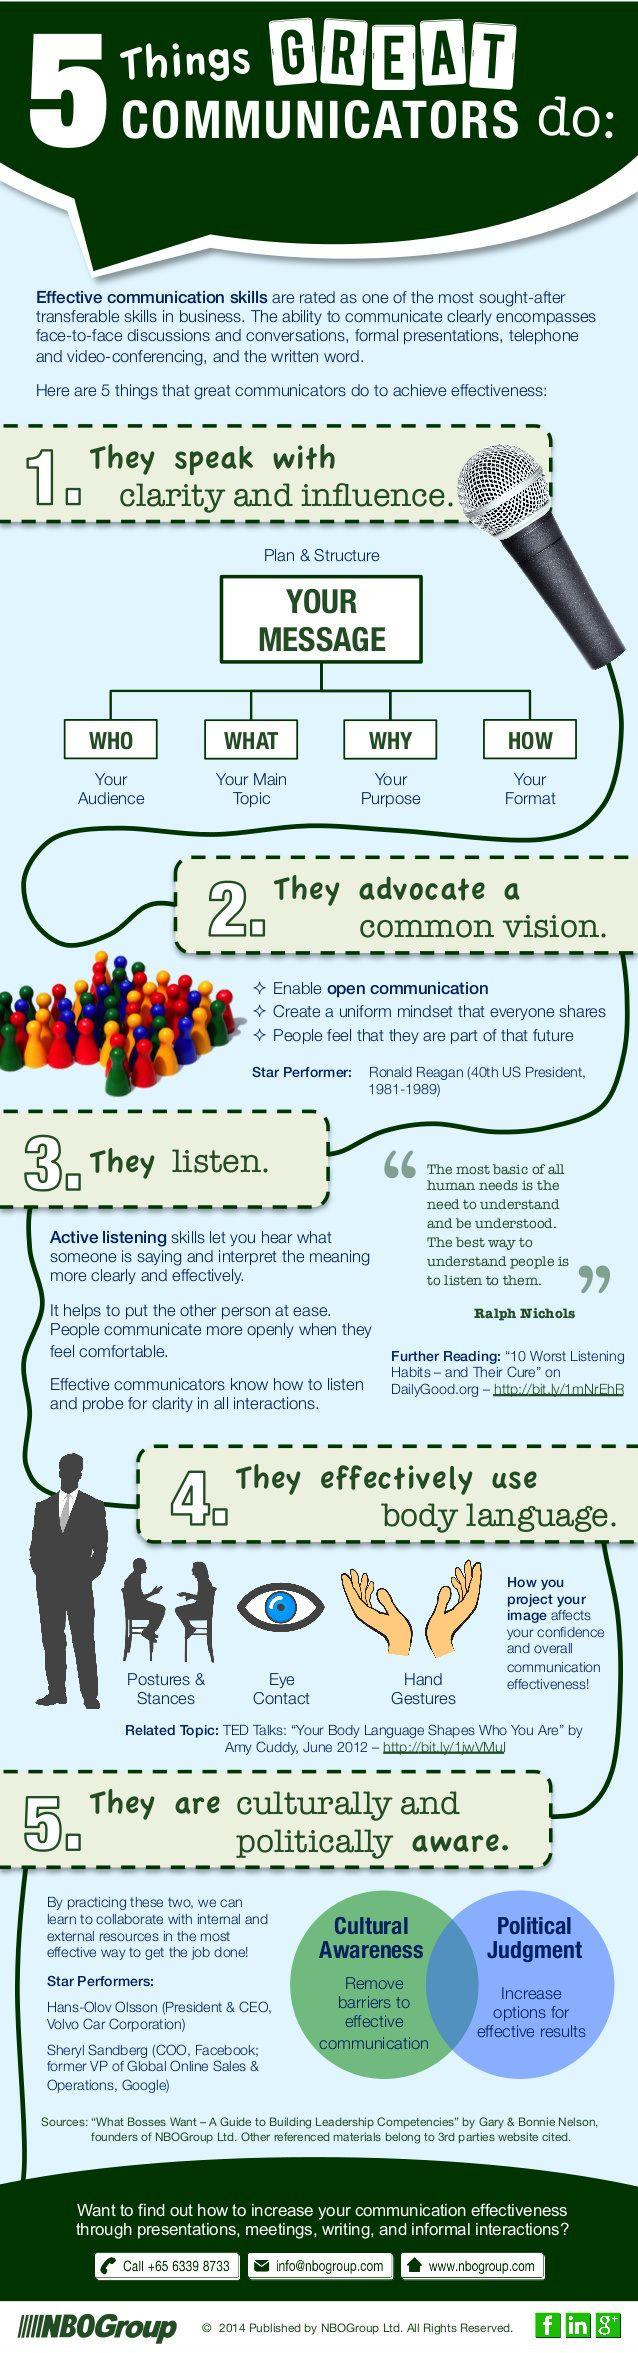 ideas about communication skills training 5 cosas que un gran comunicador hace infografia infographic marketing